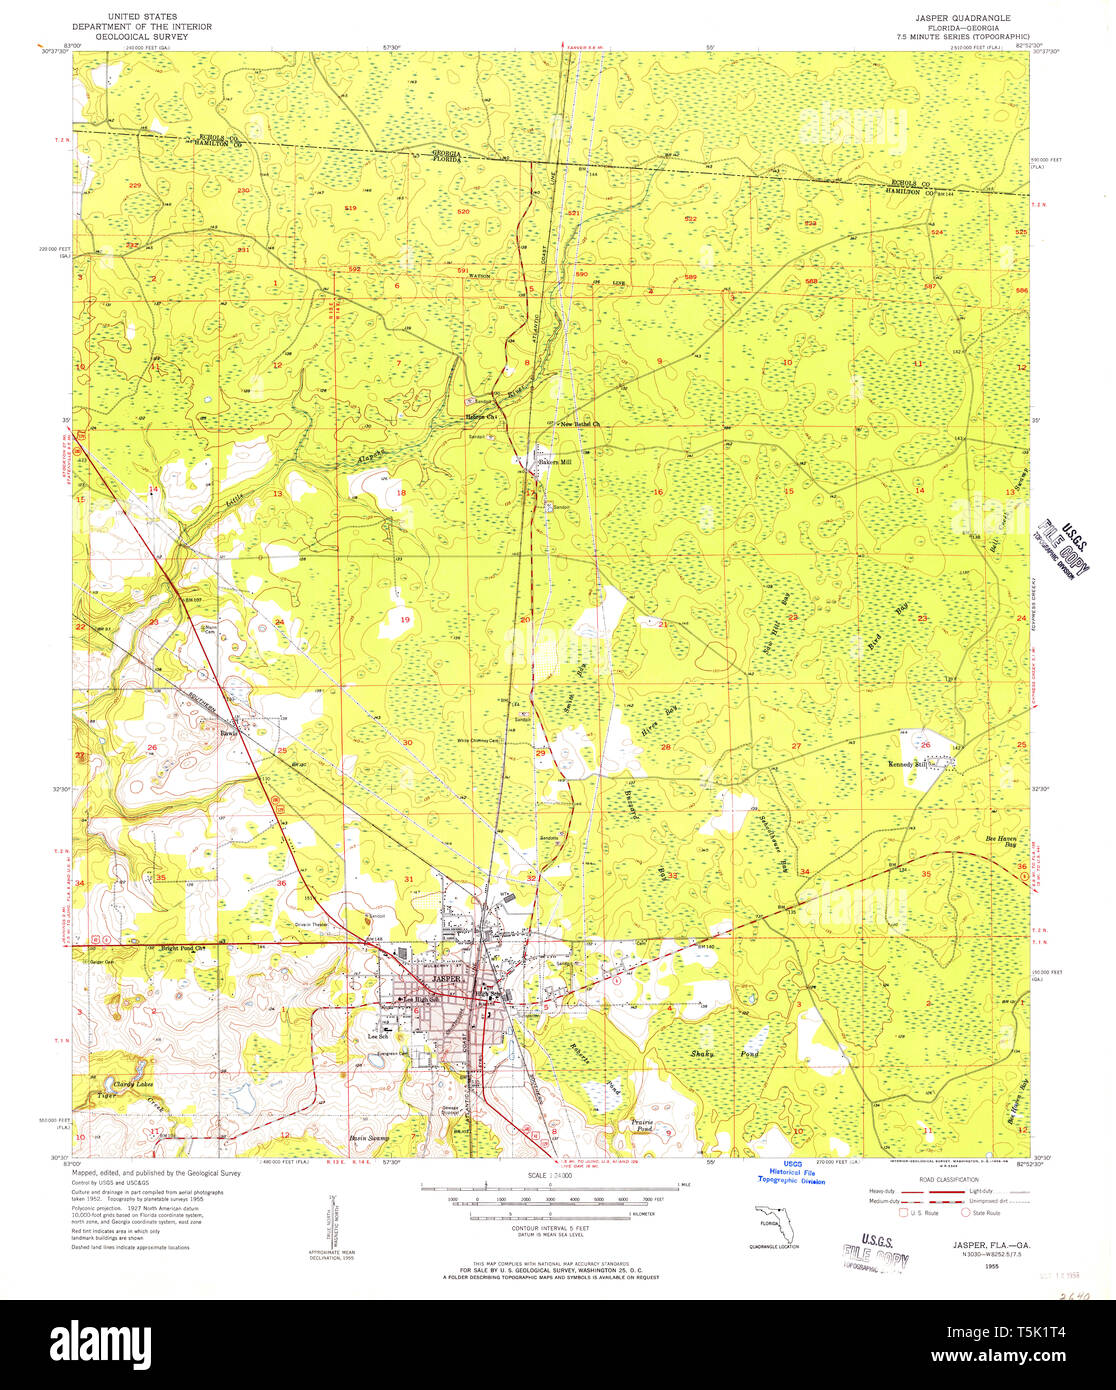 Complete Map Of Florida.Usgs Topo Map Florida Fl Jasper 346843 1955 24000 Restoration Stock